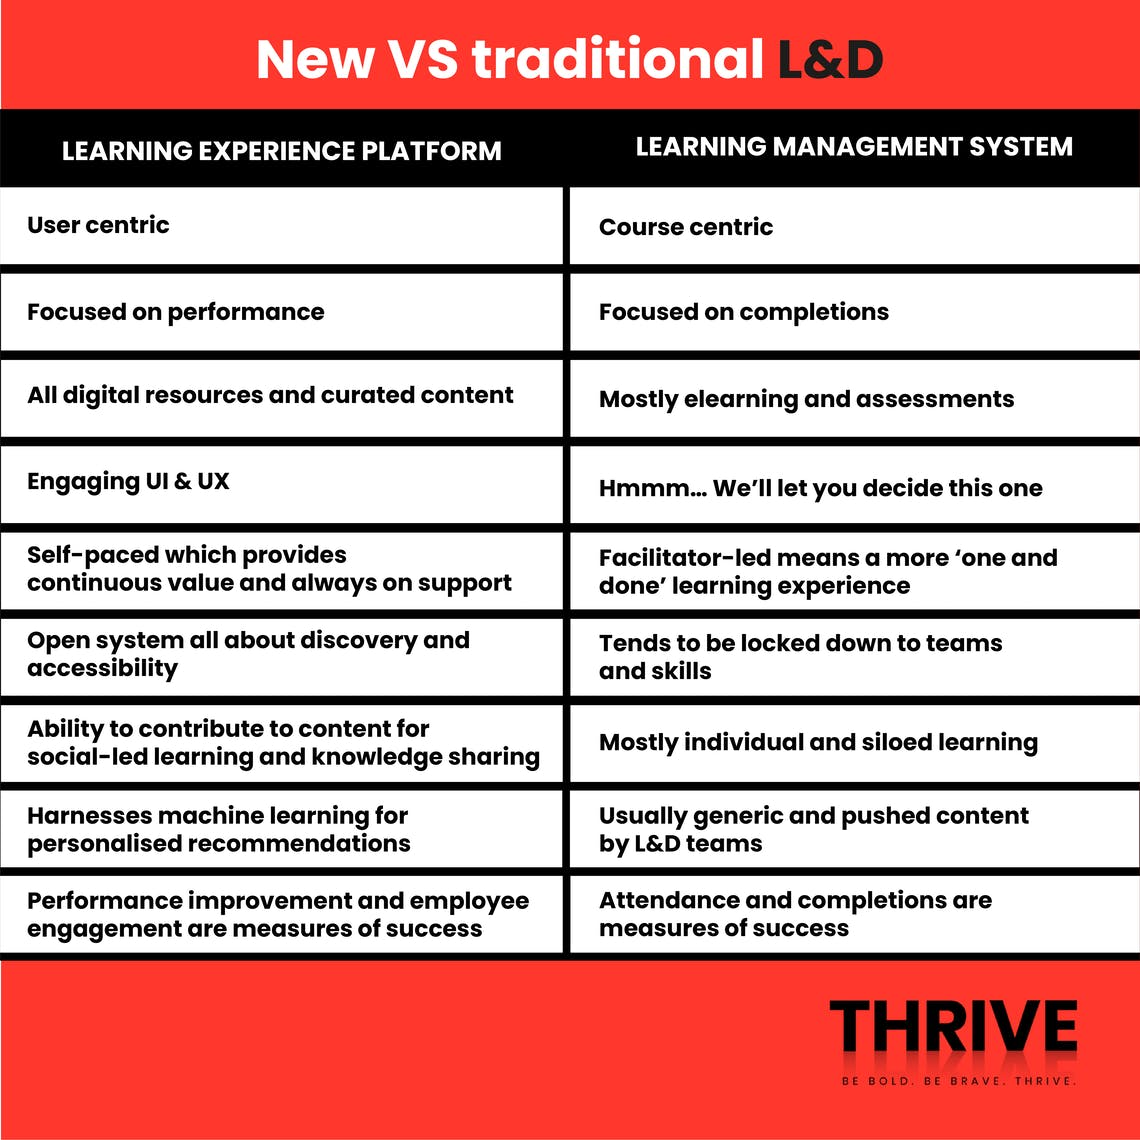 New vs traditional learning and development